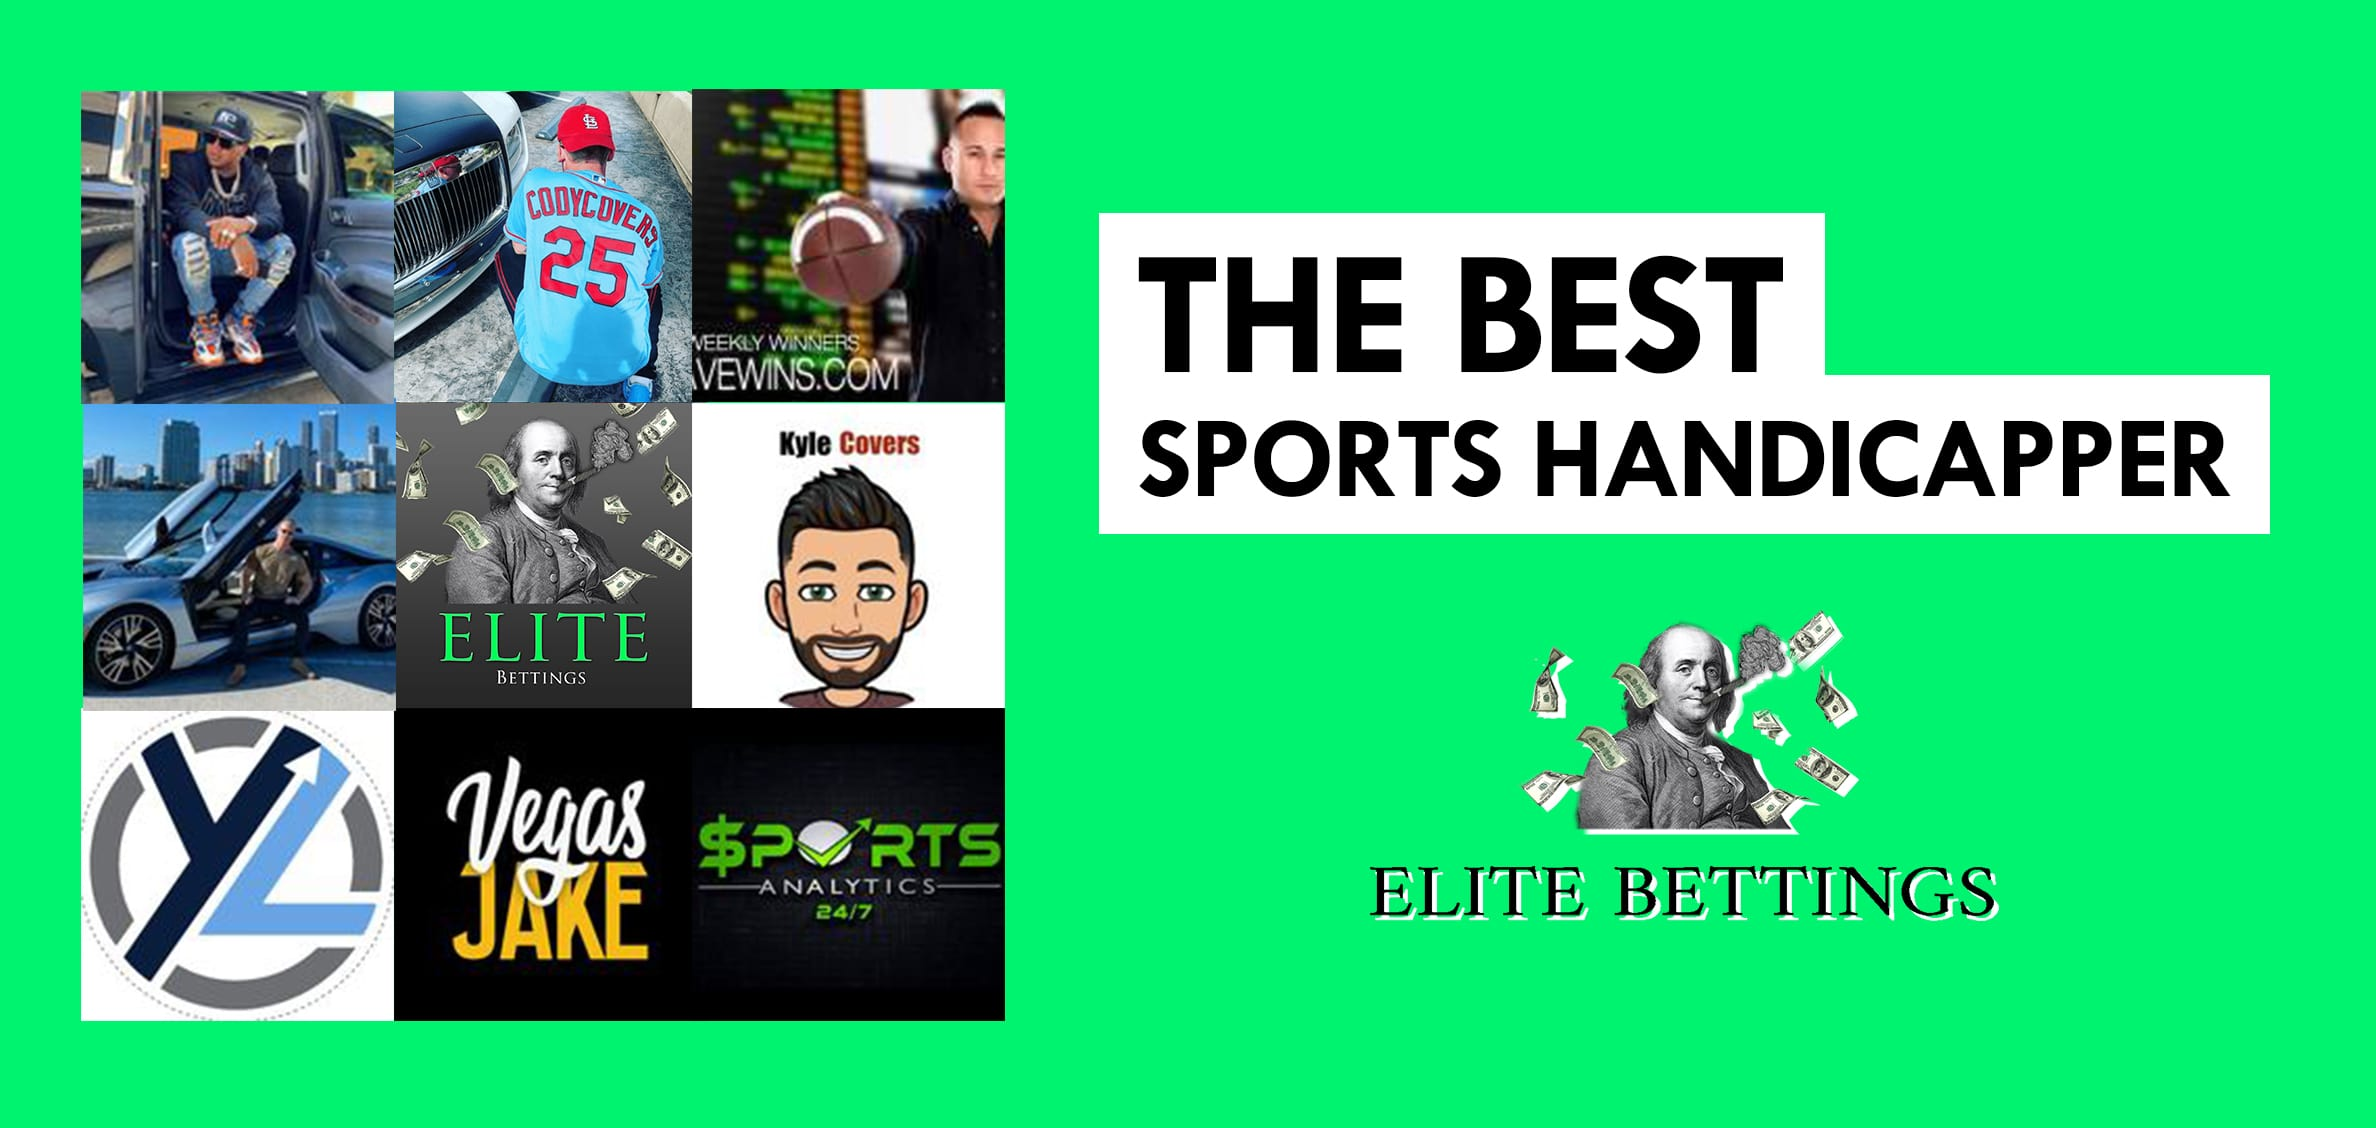 The Best Sports Handicapper | Elite Bettings